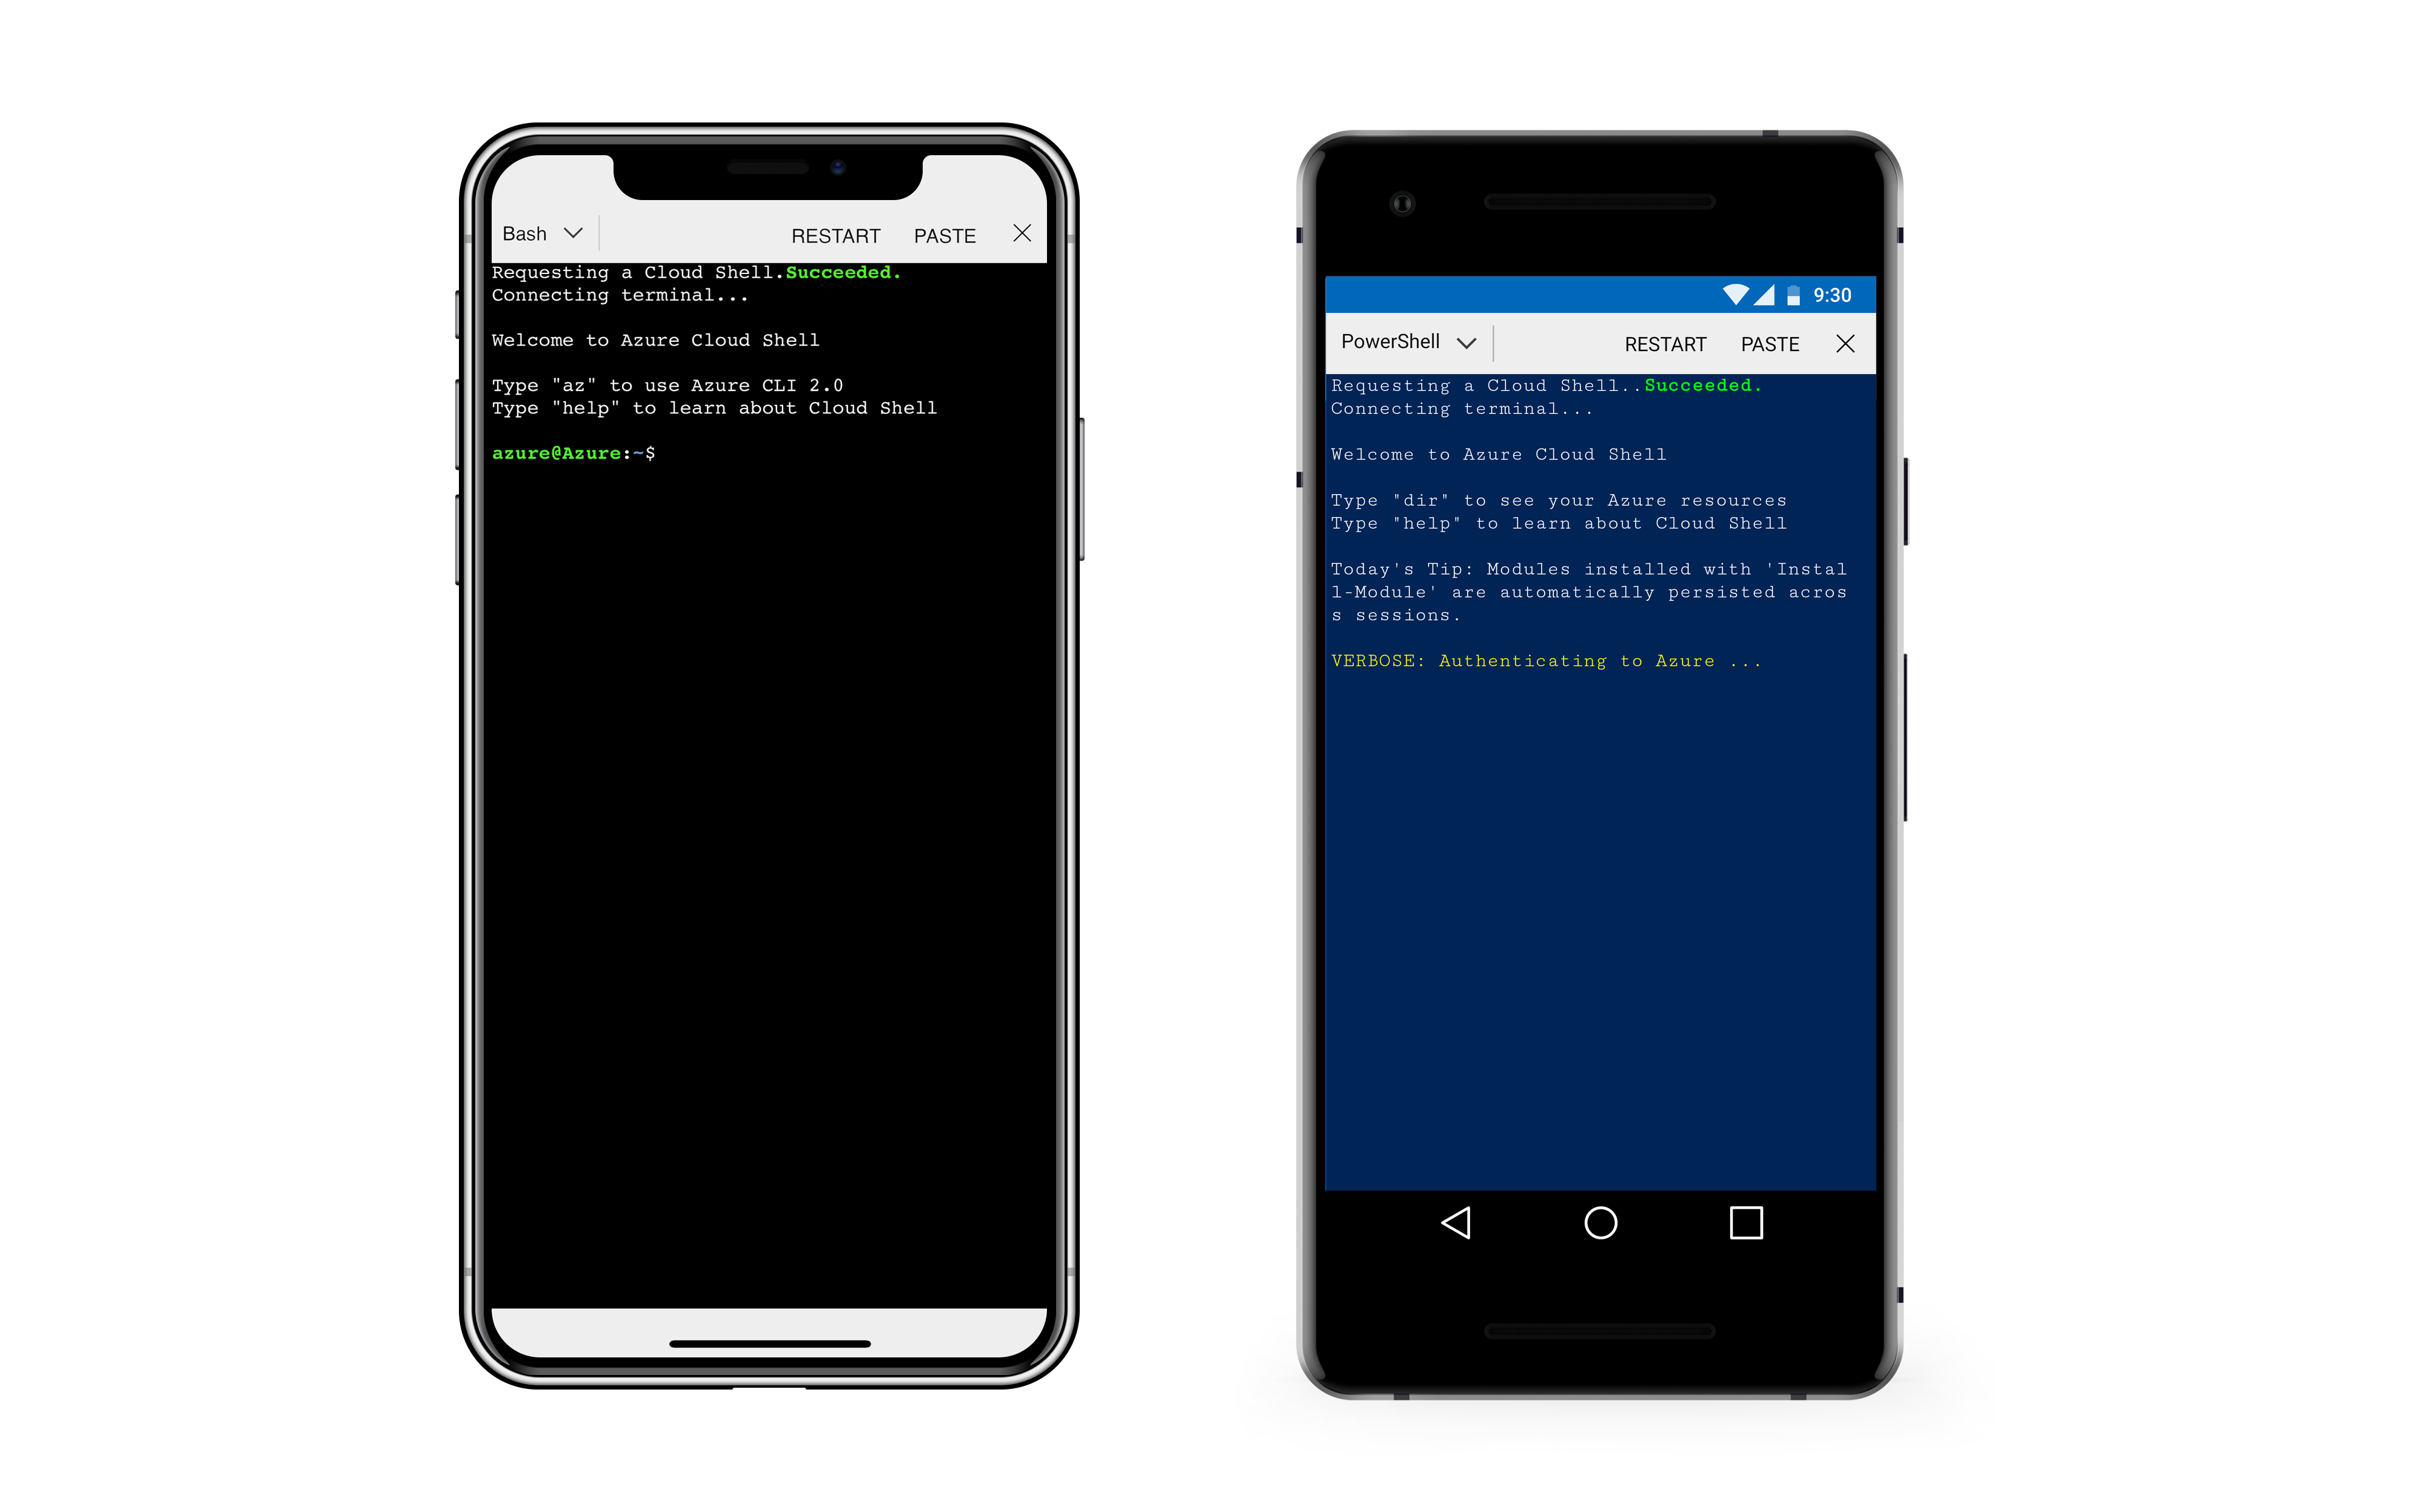 6Cloud_Shell_Azure_mobile_app_v2